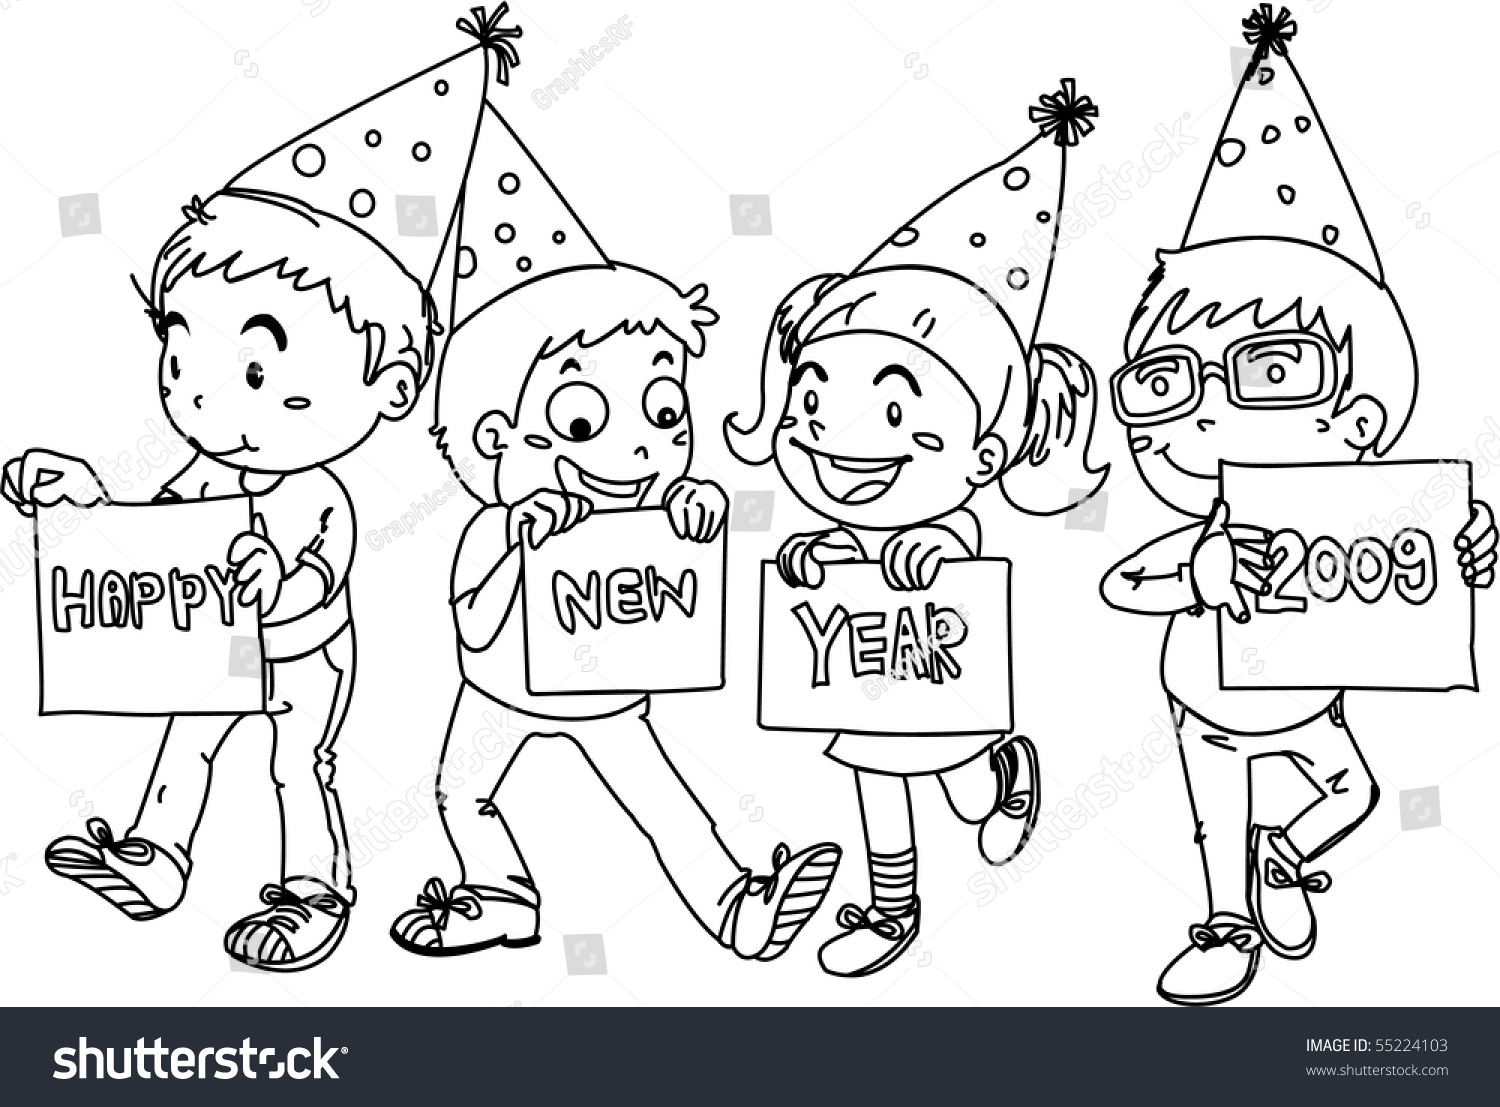 Sketch Kids Wishing Happy New Year Stock Illustration 55224103 - Shutterstock